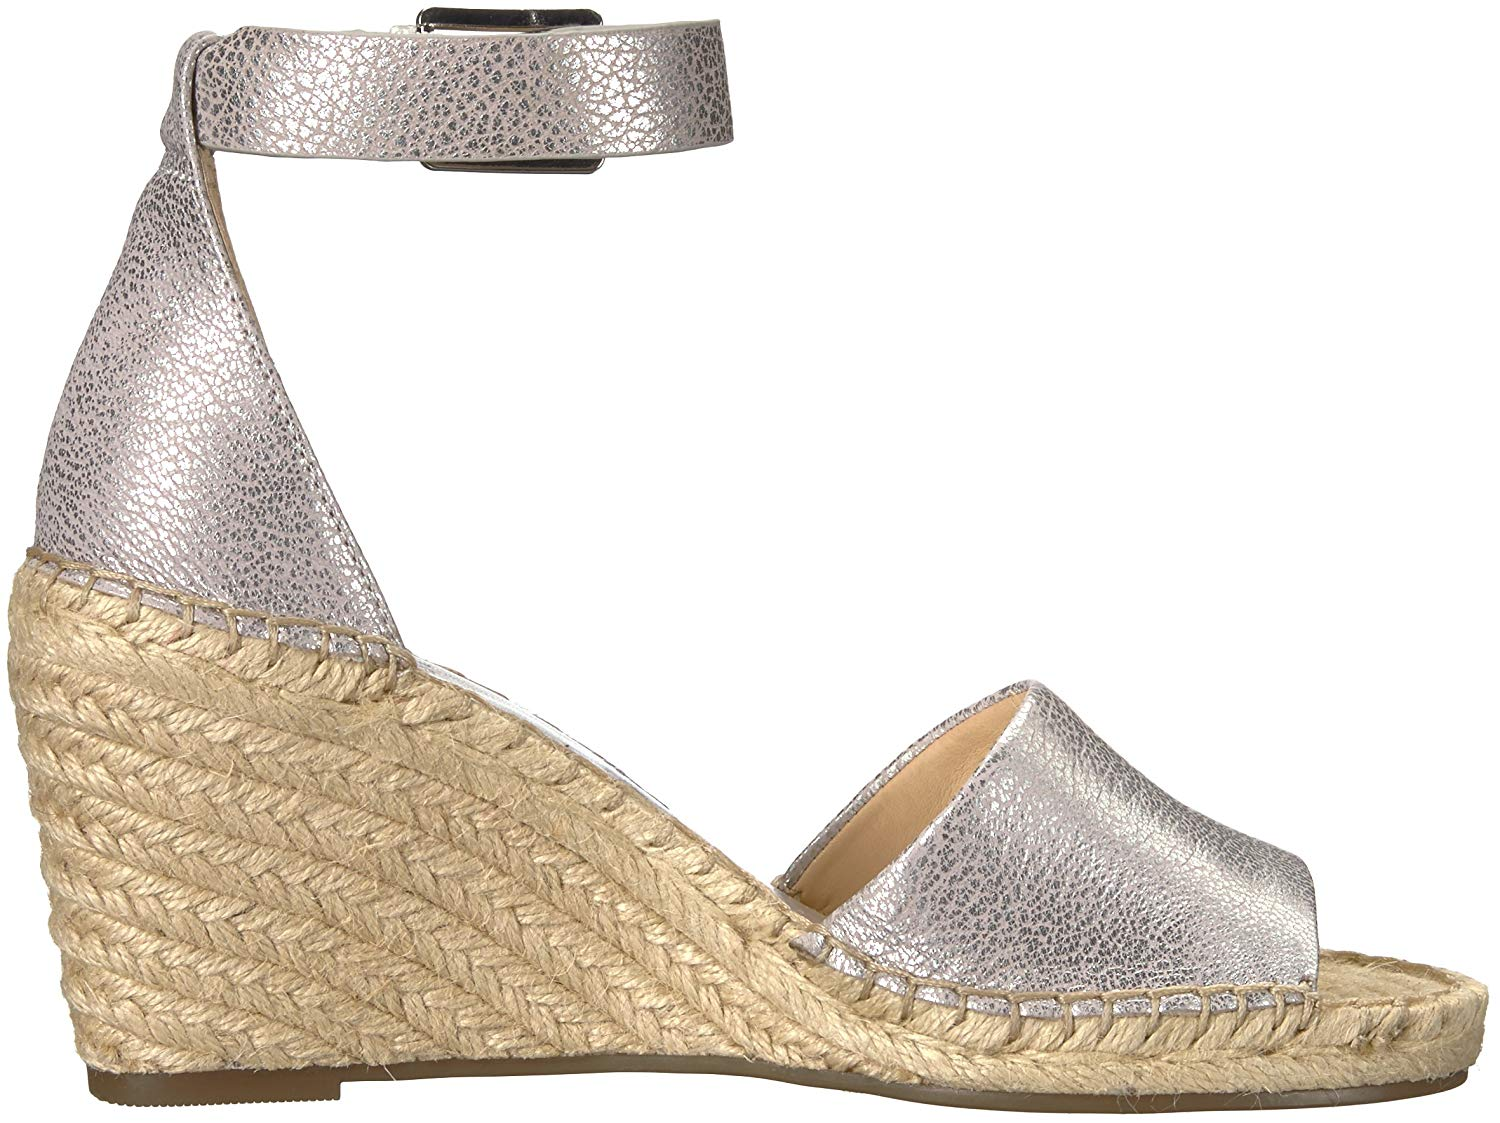 465a499dd08 Details about Vince Camuto Womens Leera Open Toe Casual Platform, Metal  Silver, Size 8.5 e80P